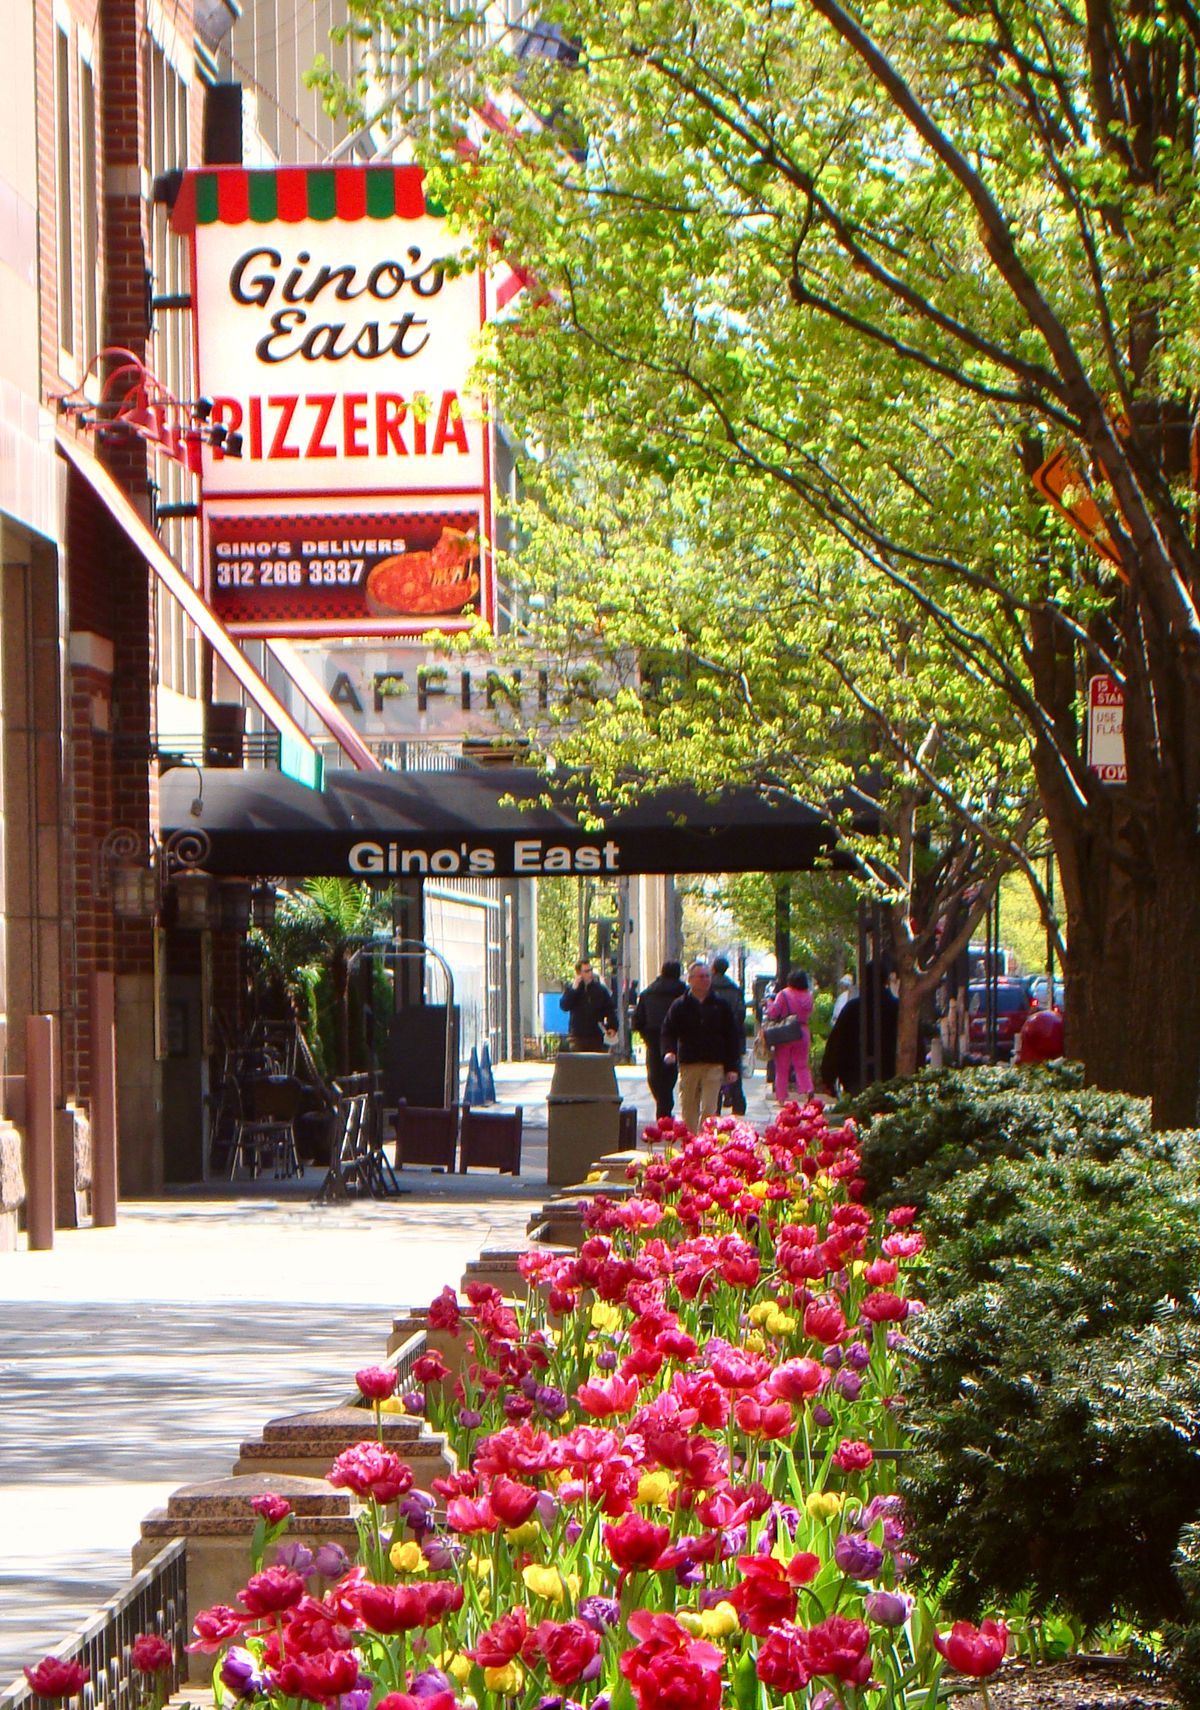 Gino's East in the Gold Coast is one of there pizzerias you'll visit on the Chicago Deep-Dish Pizza Tour from Finger Licking Foodie Tours.